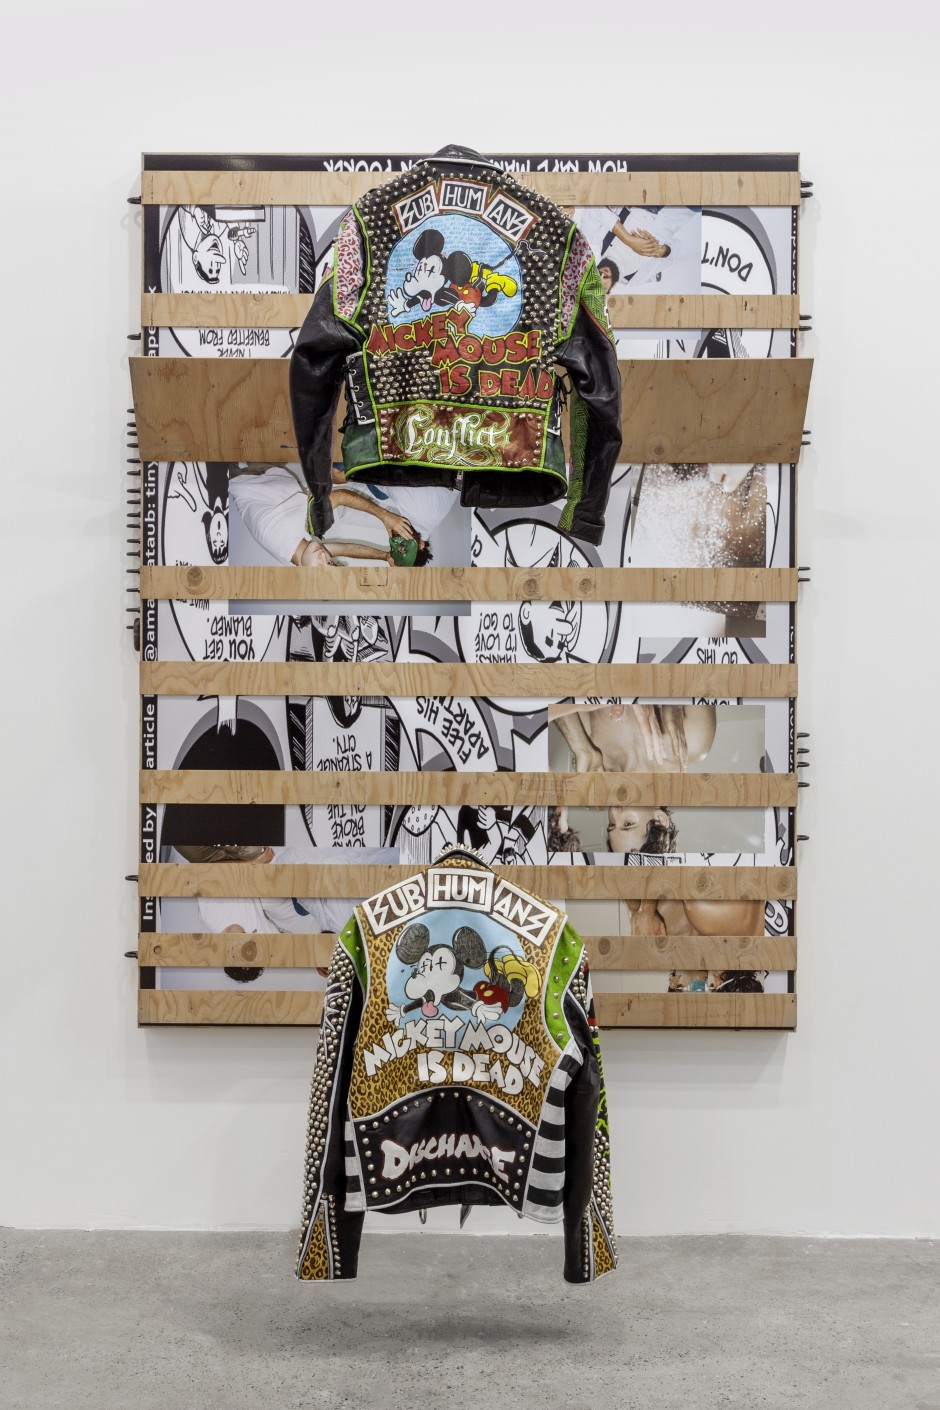 Untitled, 2017  Birch plywood, inkjet print mounted on dibond, aluminum, black oxide U-bolts, leather jackets  With Jacket Hangers: 202.6 x 161.3 x 70.5 cm 79 3/4 x 63 1/2 x 27 3/4 in.  Without Jacket Hangers:  202.6 x 161.3 x 26.7 cm 79 3/4 x 63 1/2 x 10 1/2 in.